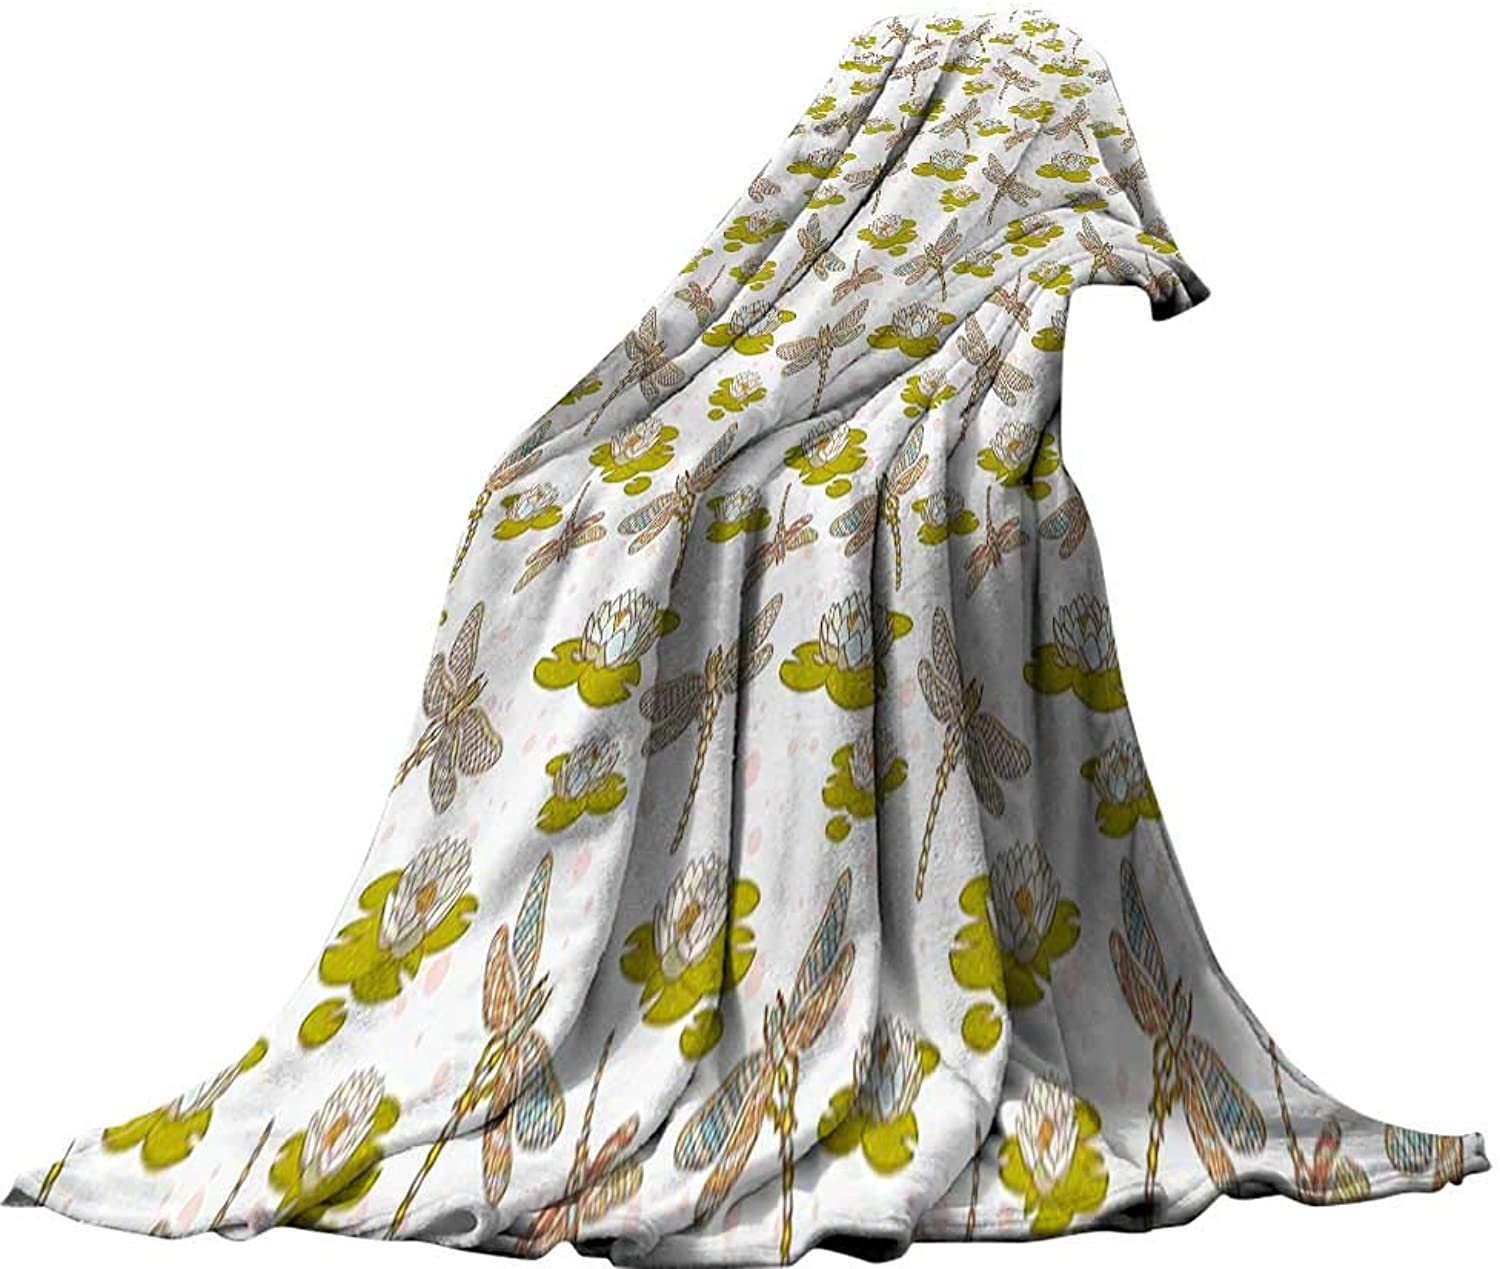 QINYAN-Home Weave Pattern Extra Long Blanket (60 x60 ) Summer Quilt Comforter Dragonfly River Side Flowers Loddon Lilies Leaves with Mosaic Pattern Like Wings Image Multicolor.